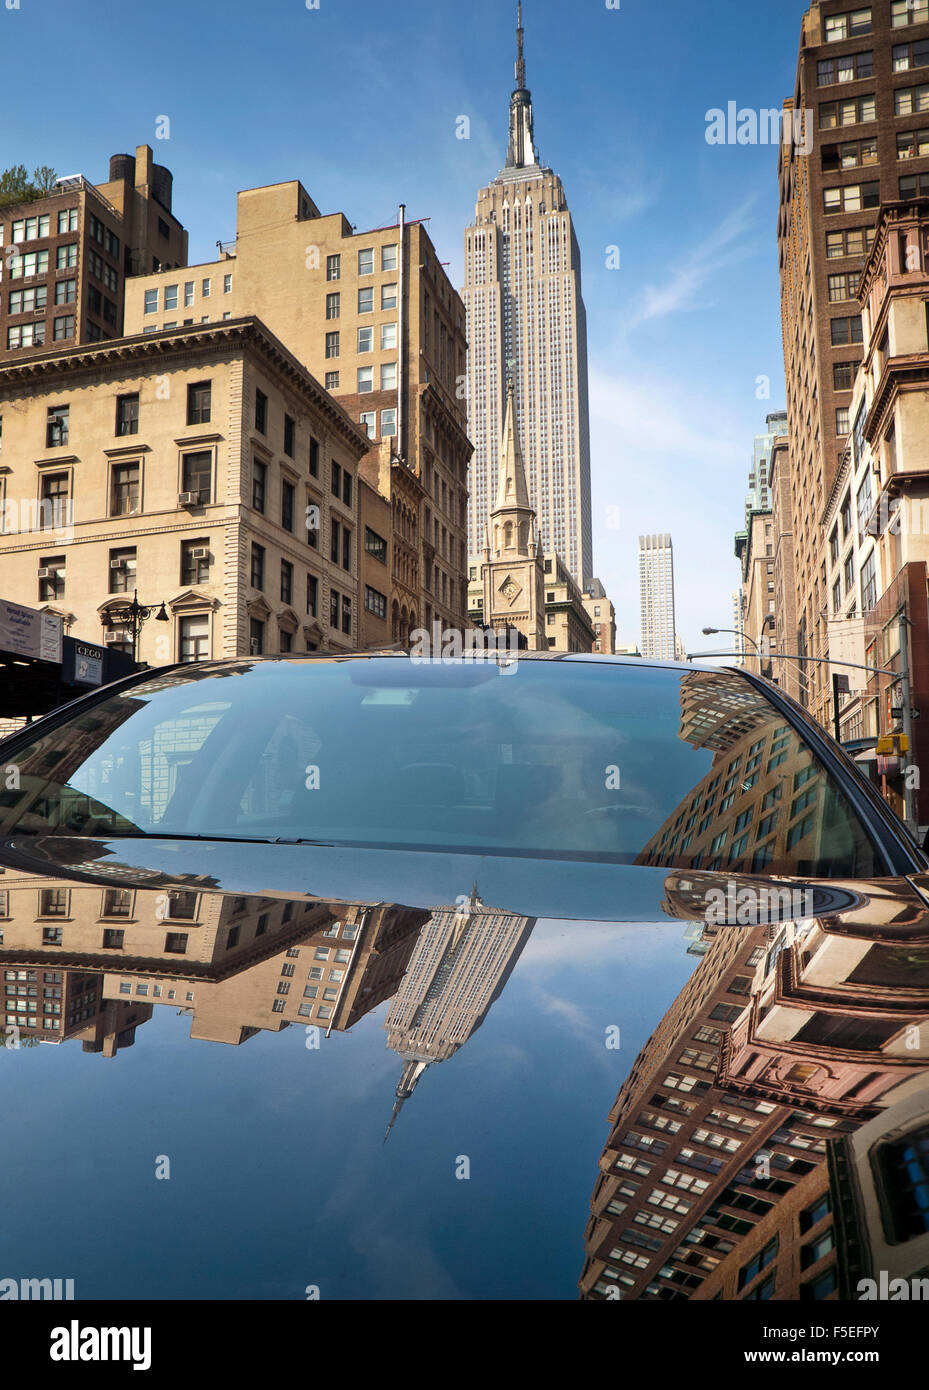 Reflection of empire state building on parked car, New York, America, USA - Stock Image